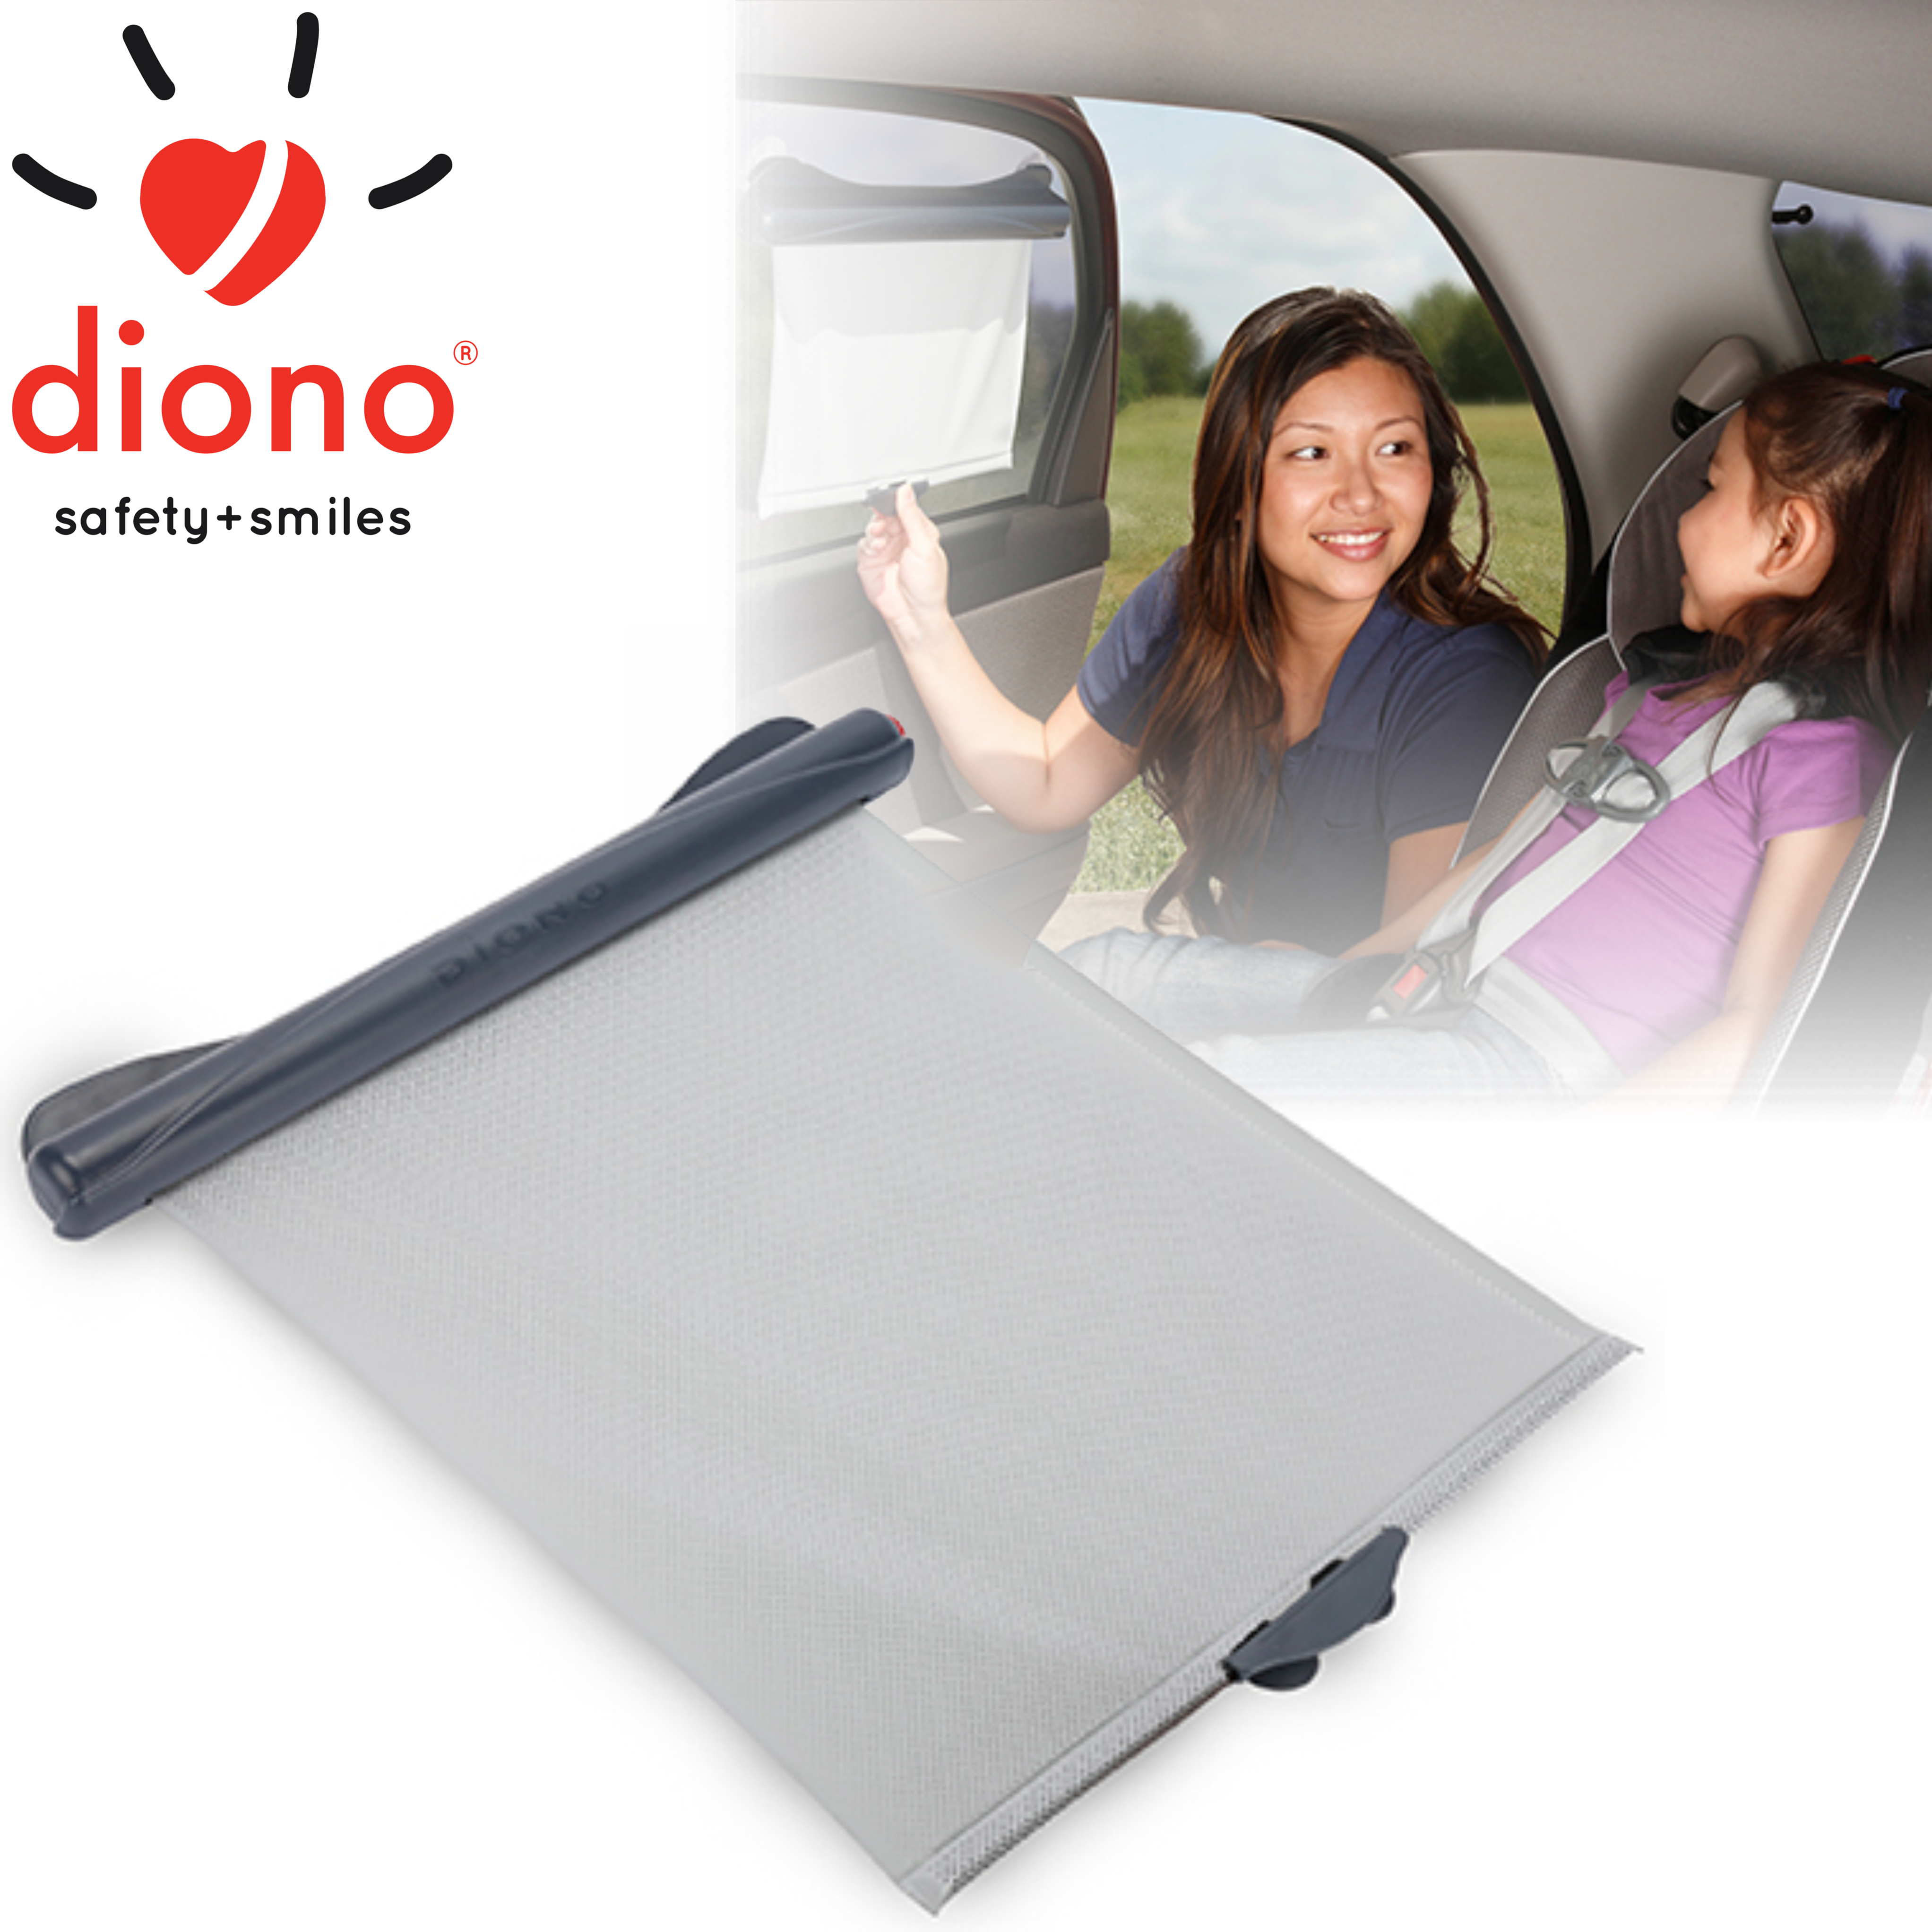 Diono Solar-Max Retractable Universal Car Window Sun Shade For Baby | Lightweight